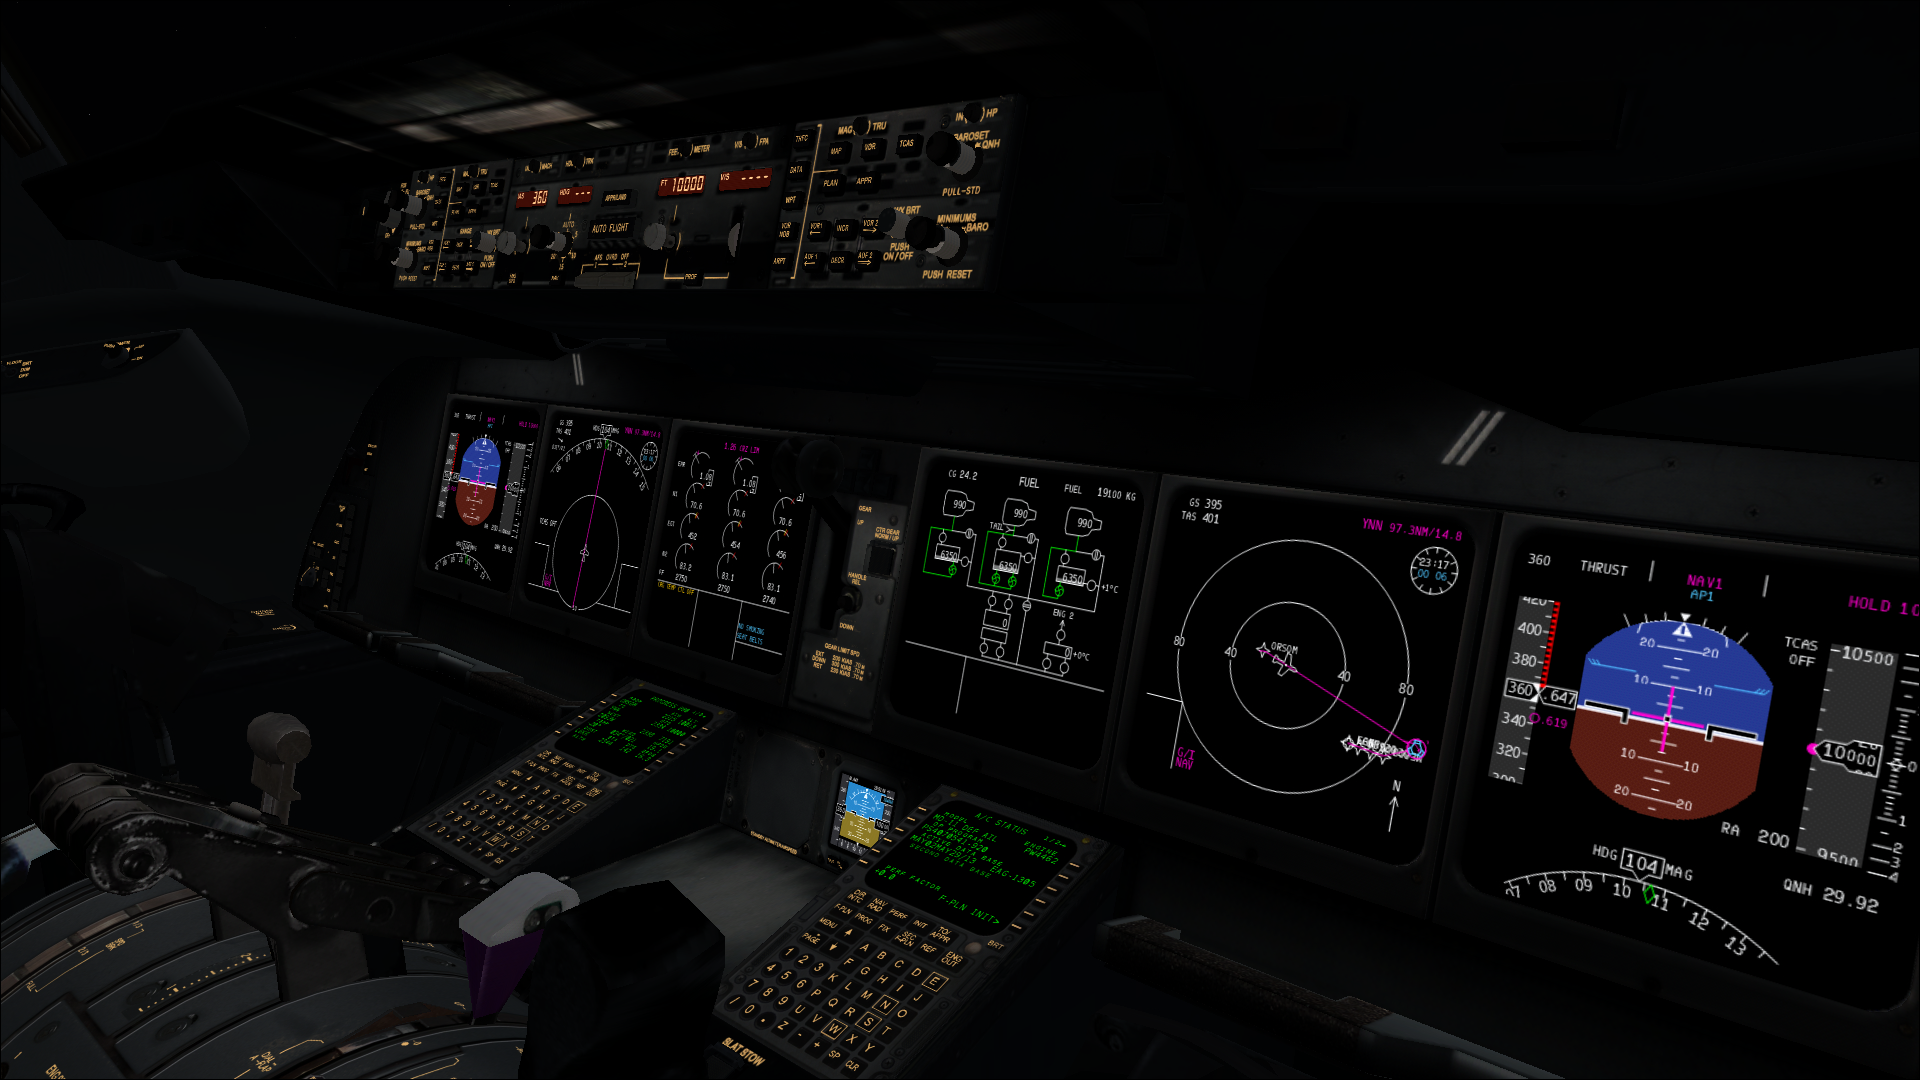 Freeware Fsx Md-11 Cockpit Related Keywords & Suggestions